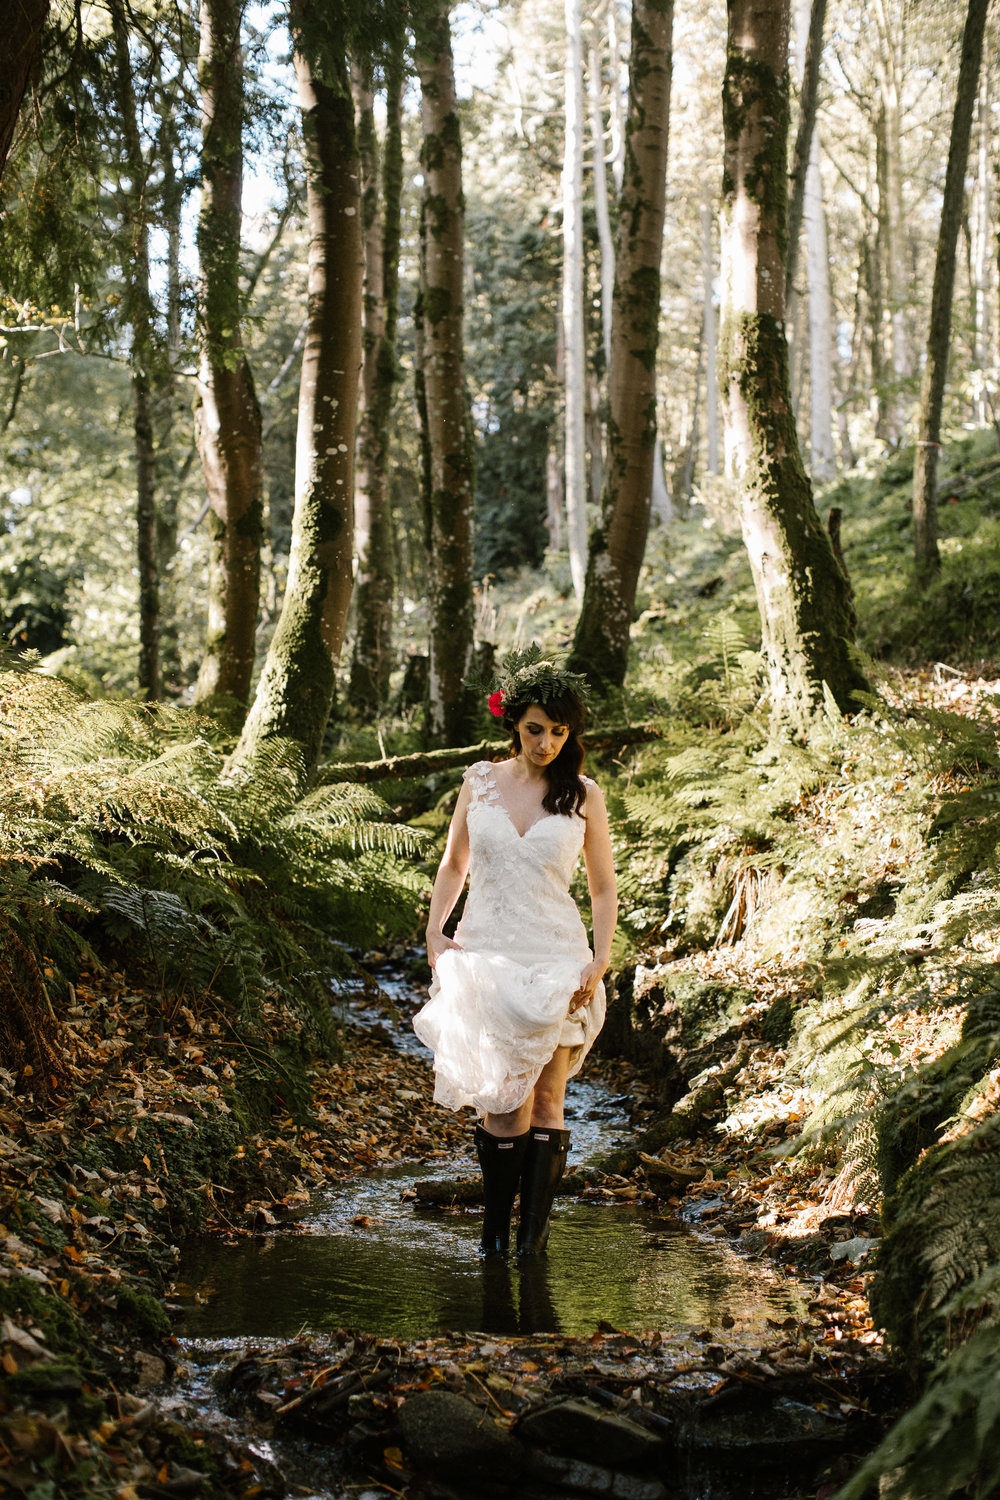 clairebyrnephotography-styled-shoot-huntingbrook-gardens-inspiration-weddings-woods-forest-73.jpg